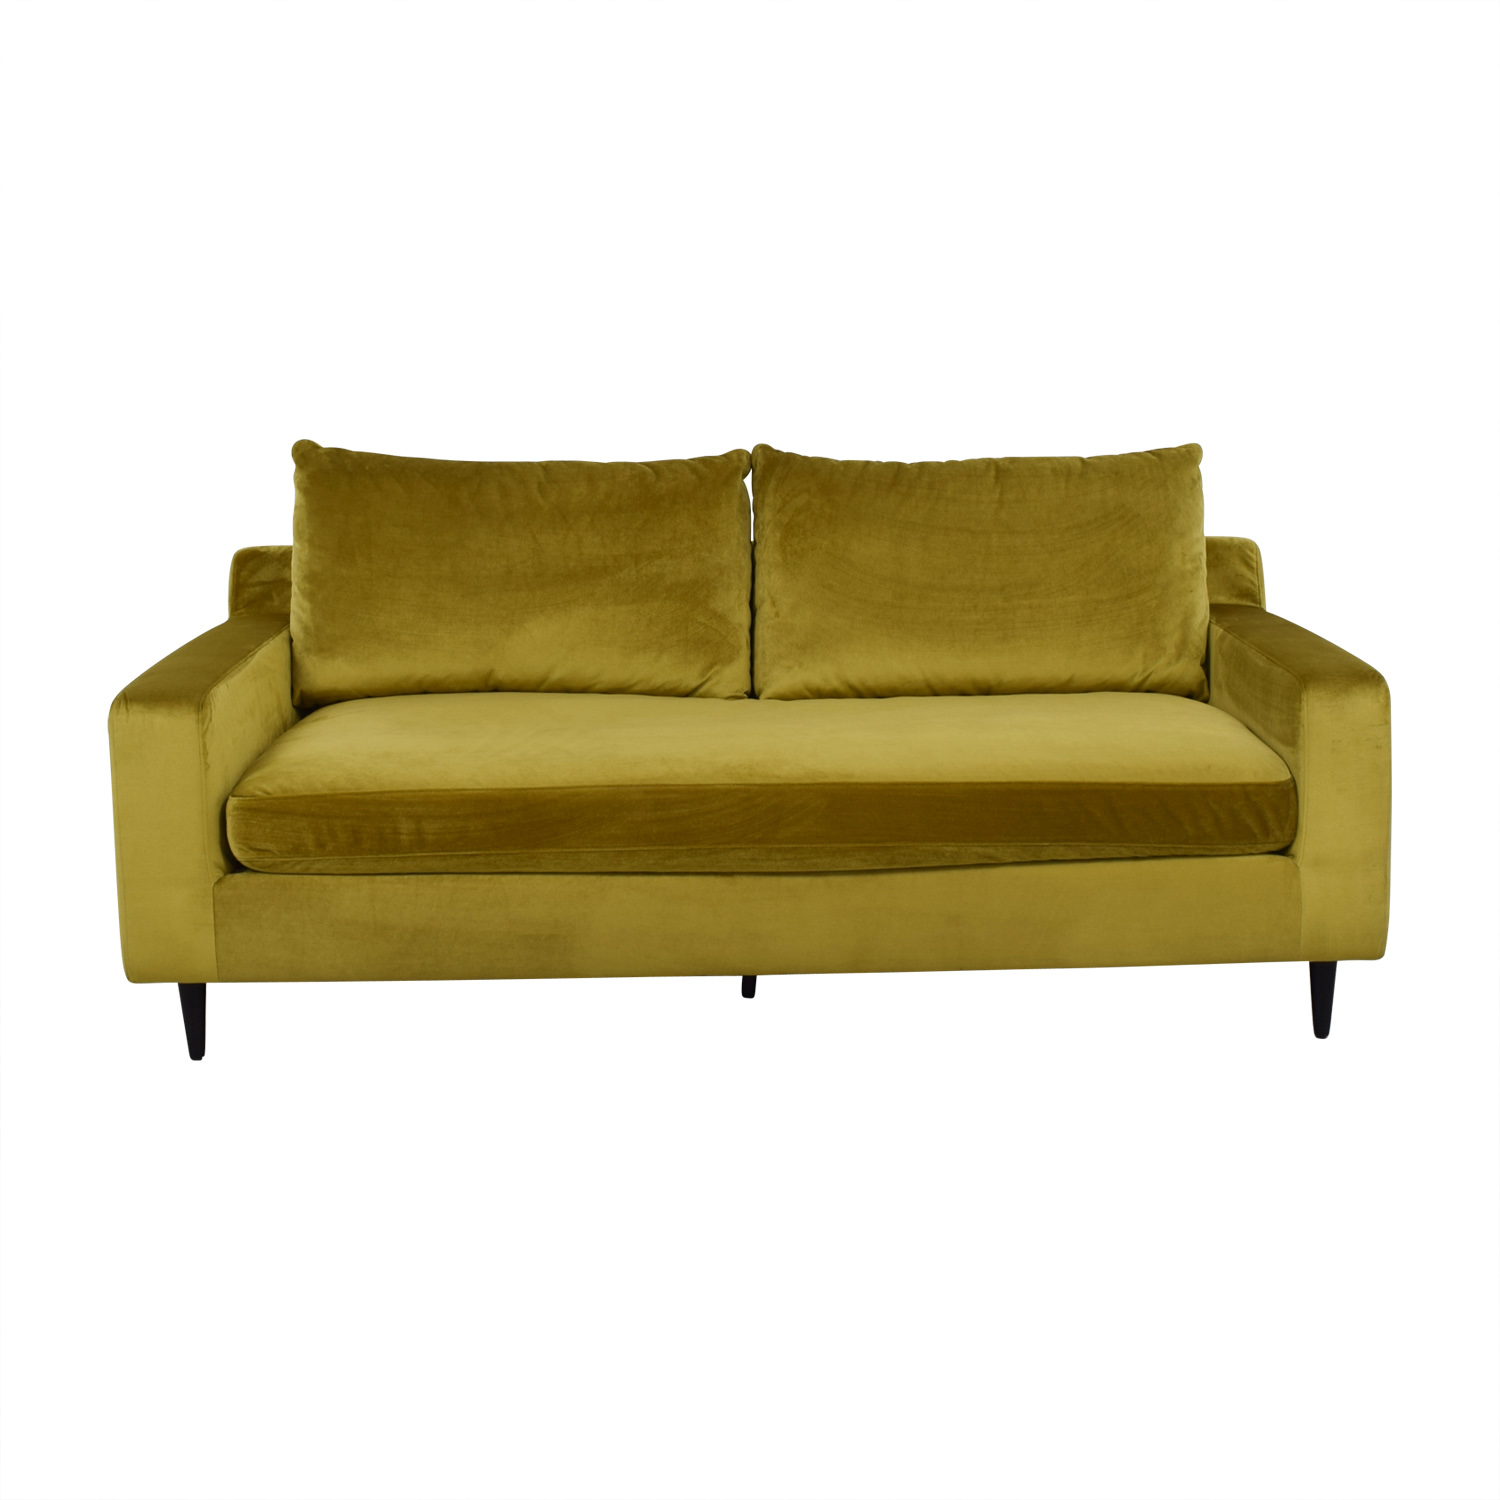 Sloan Yellow Velvet Single Cushion Sofa / Classic Sofas